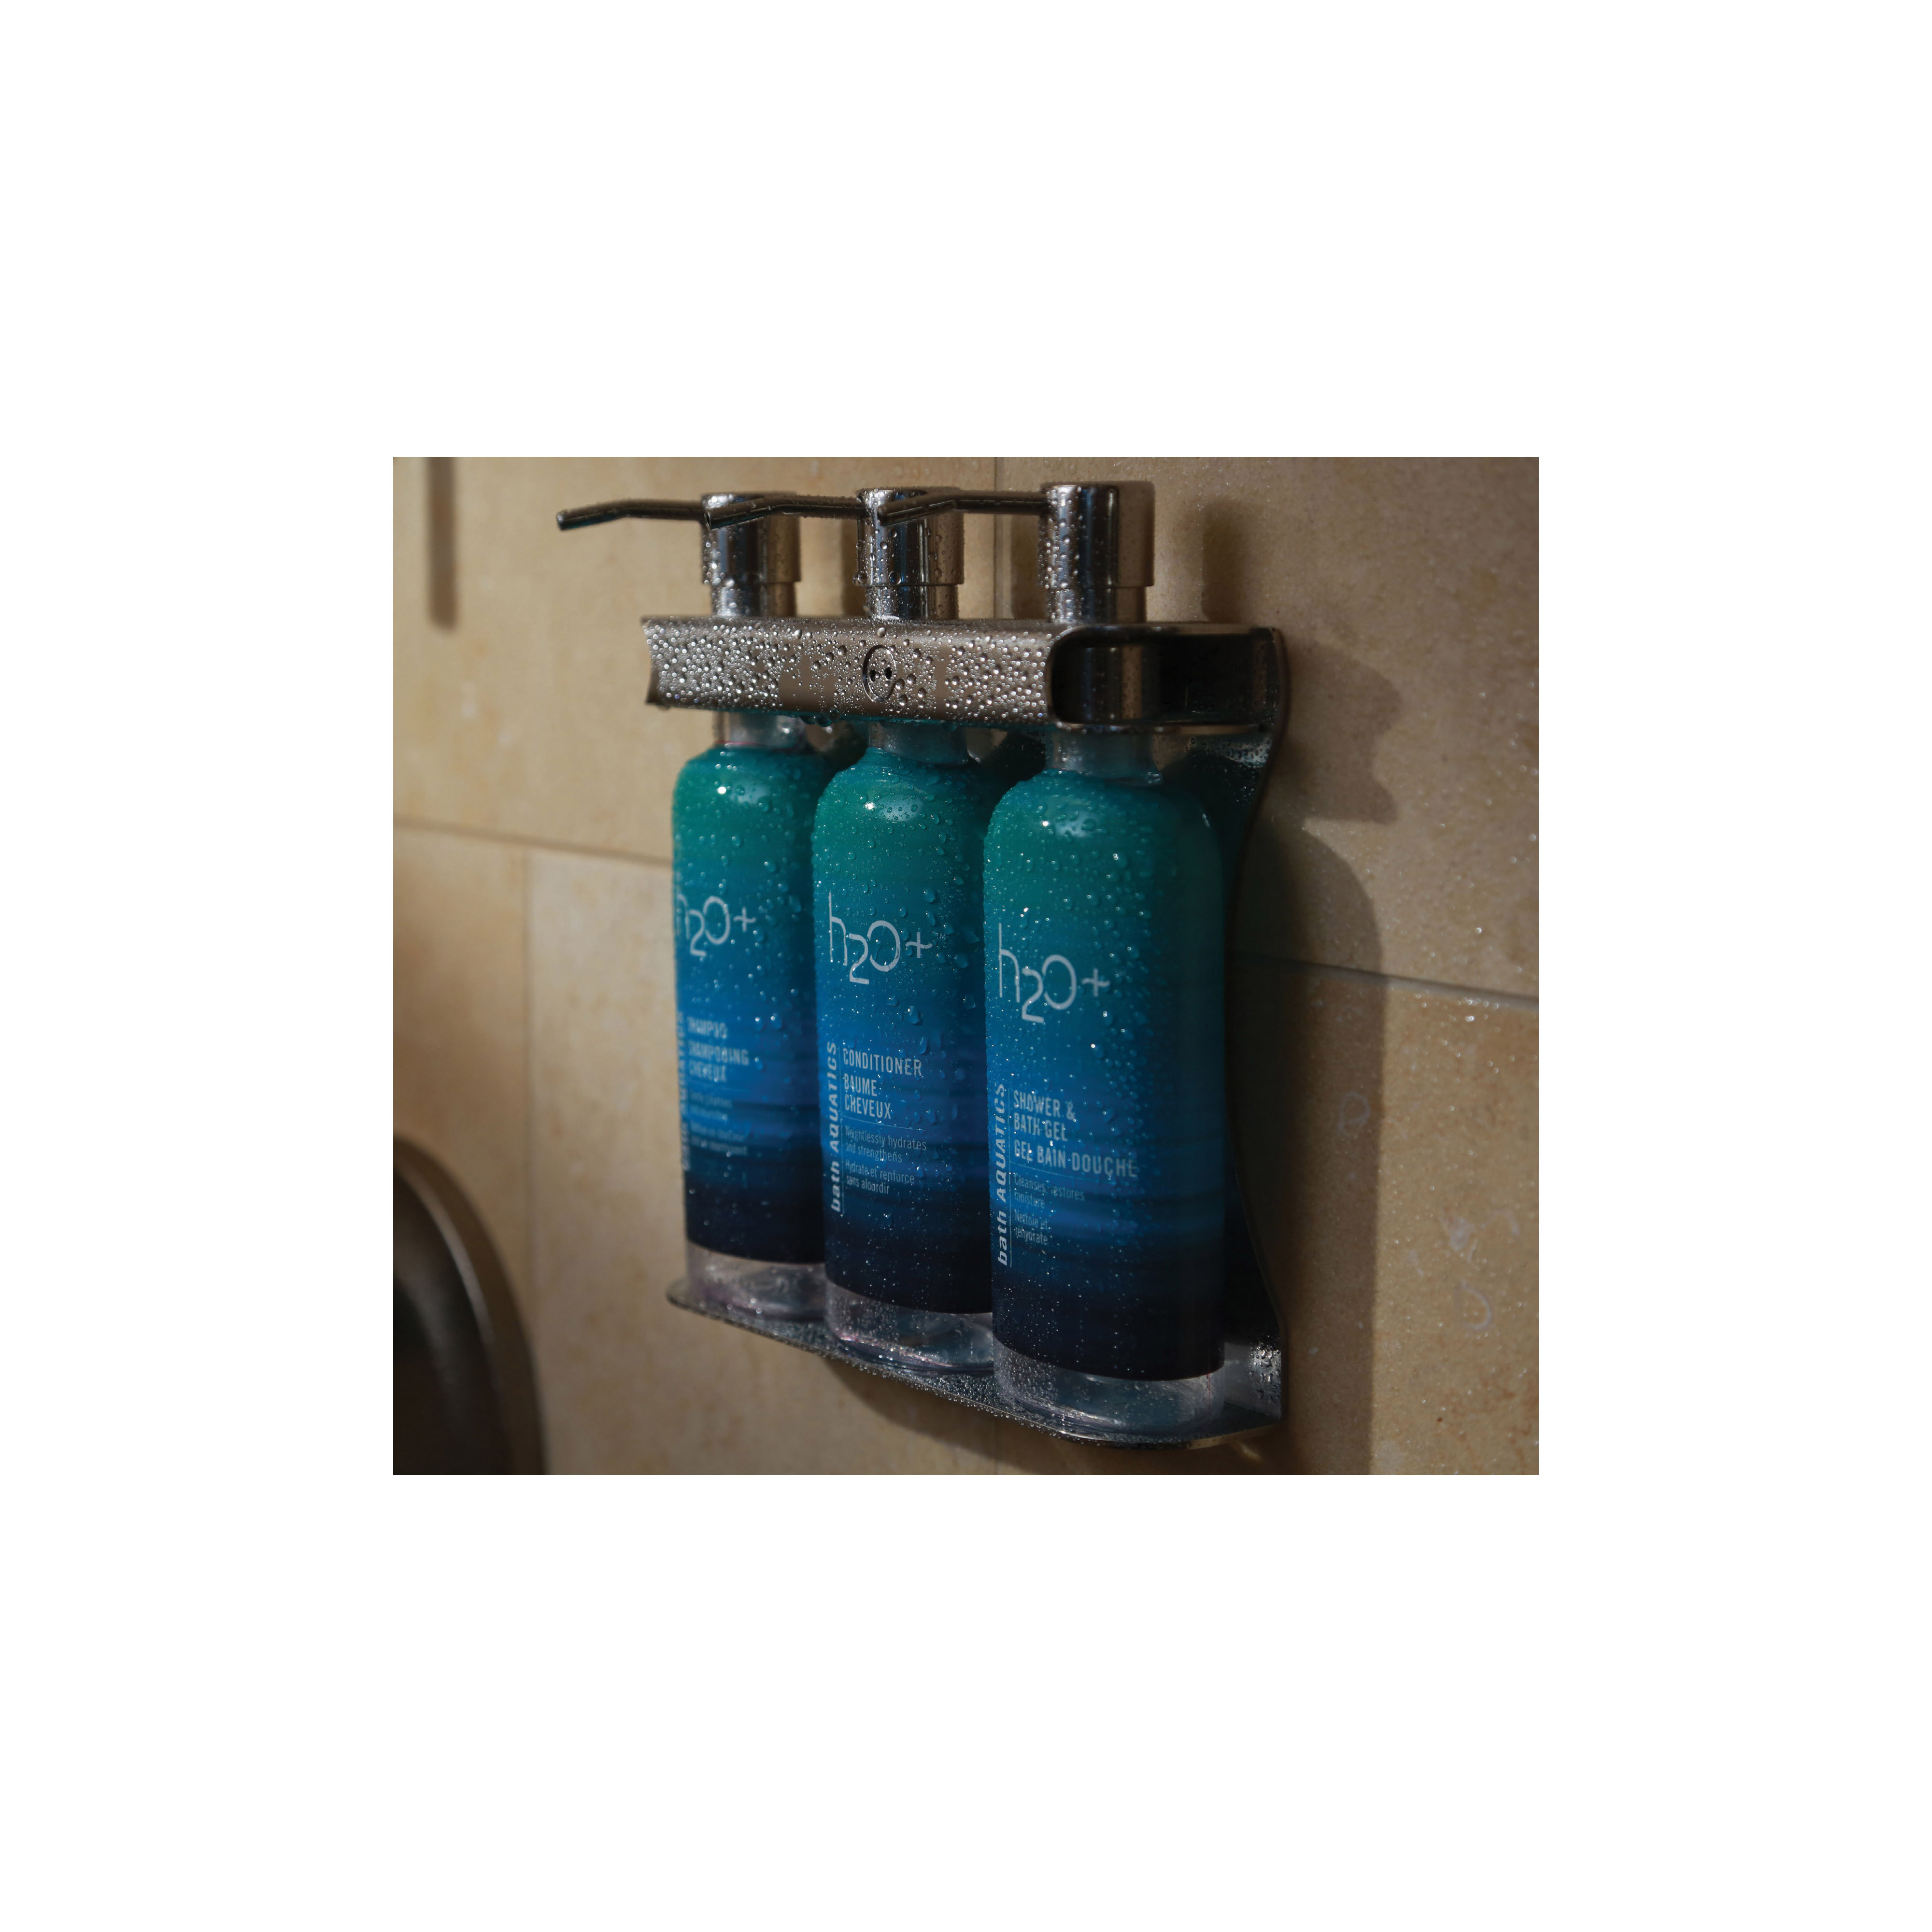 Aquamenities Amenity Fixtures Luxury Hotel Products The Gallery